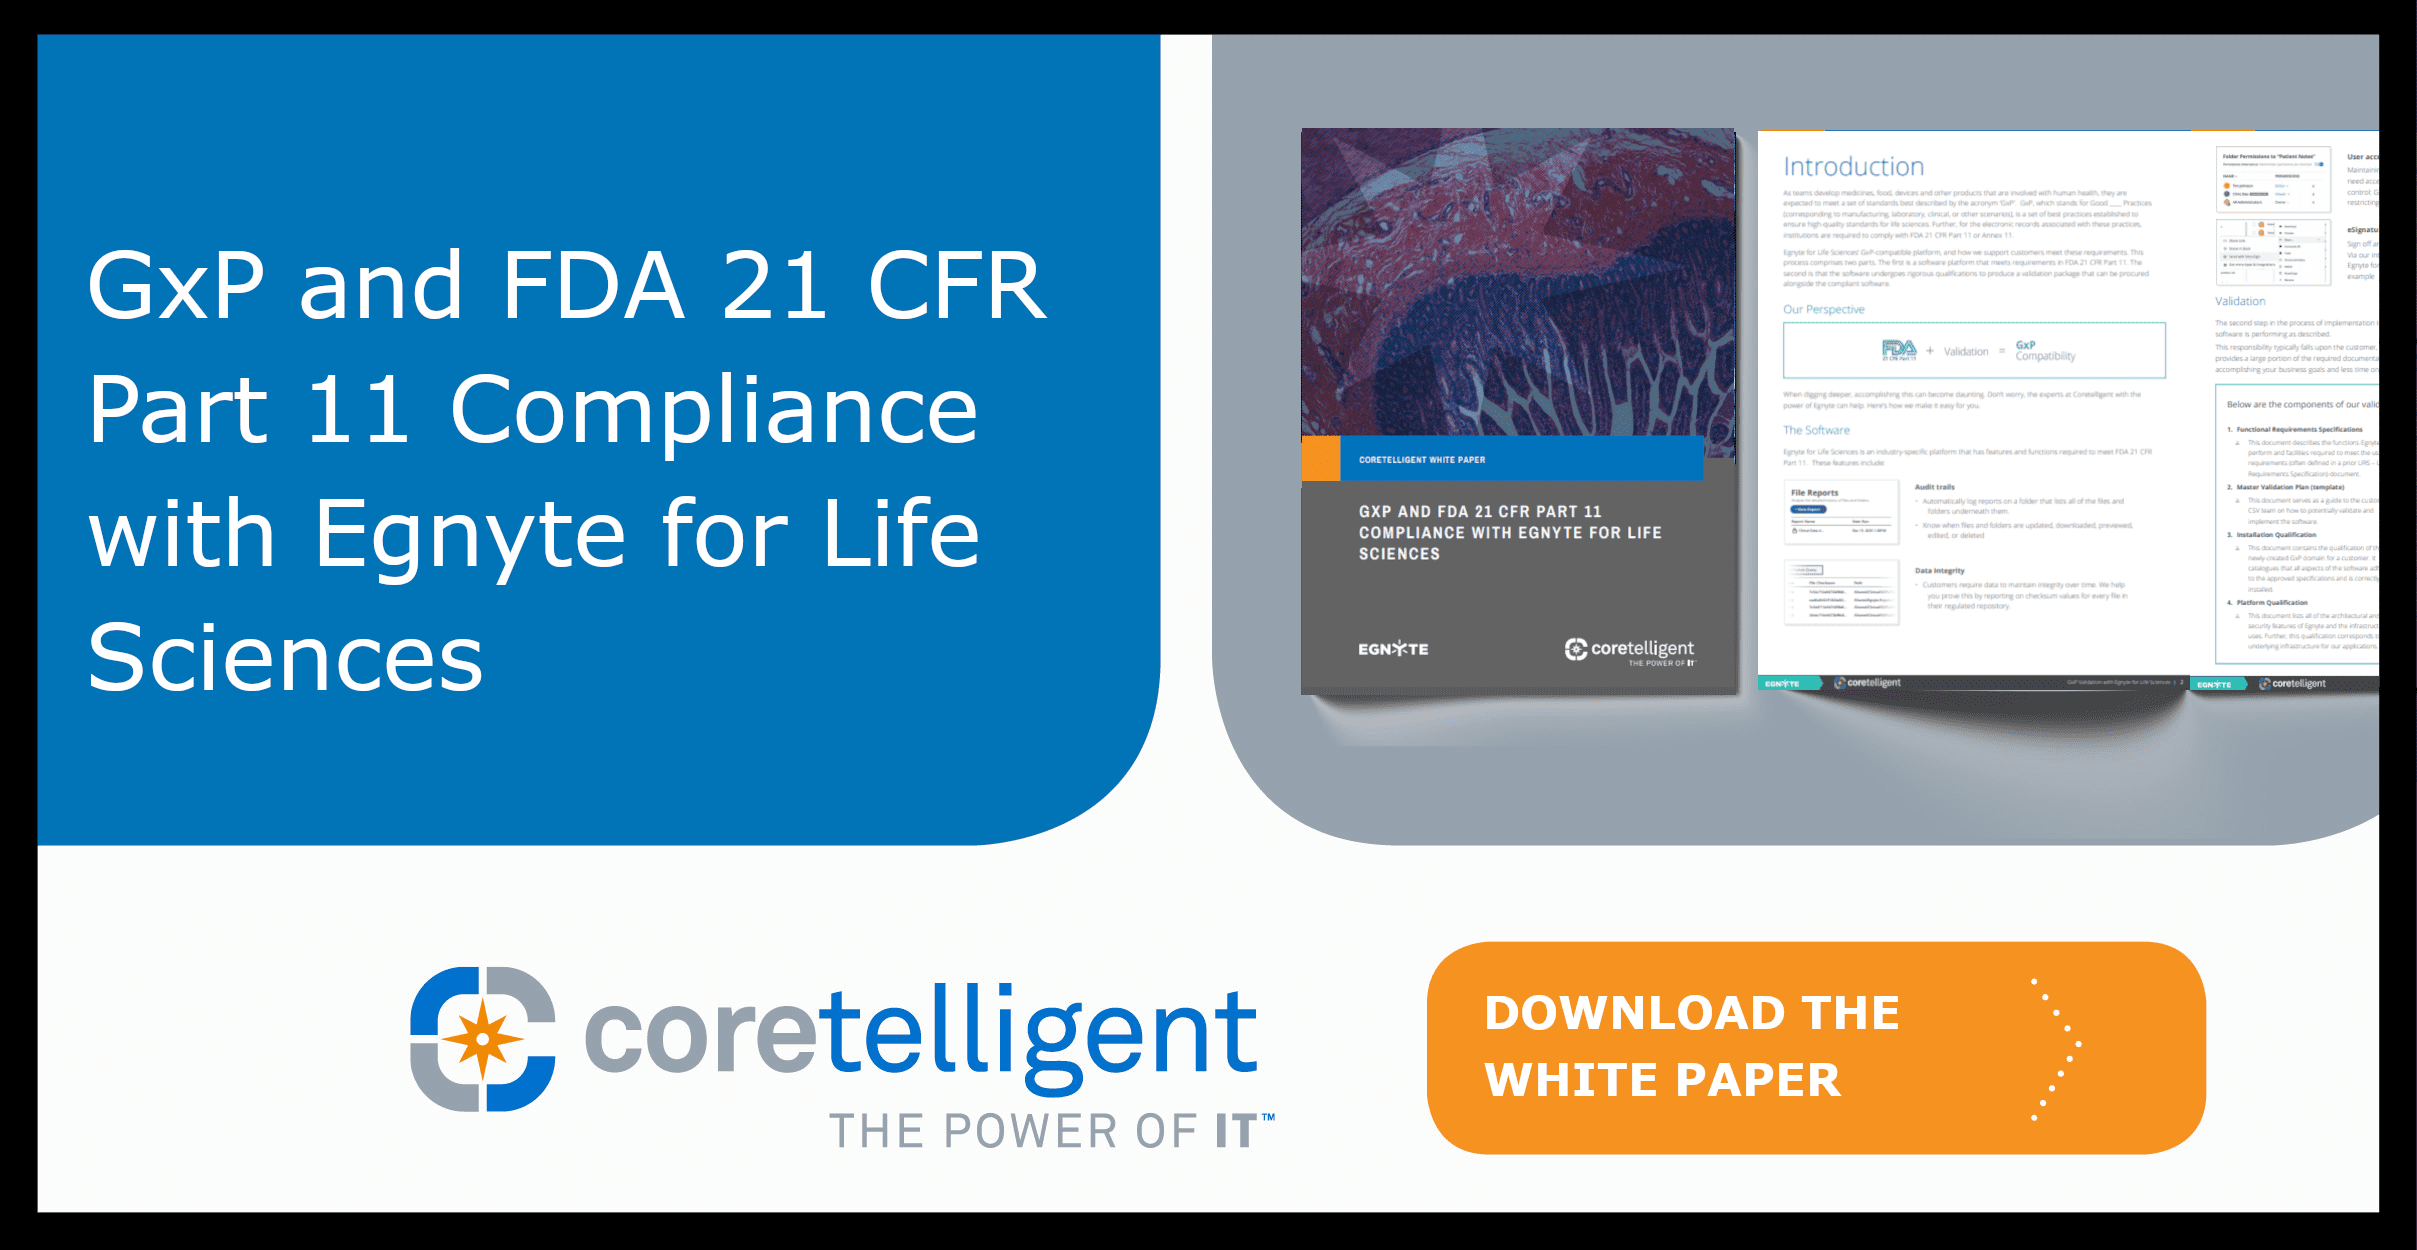 GxP and FDA 21 CFR Part 11 Compliance with Egnyte for Life Sciences Whitepaper